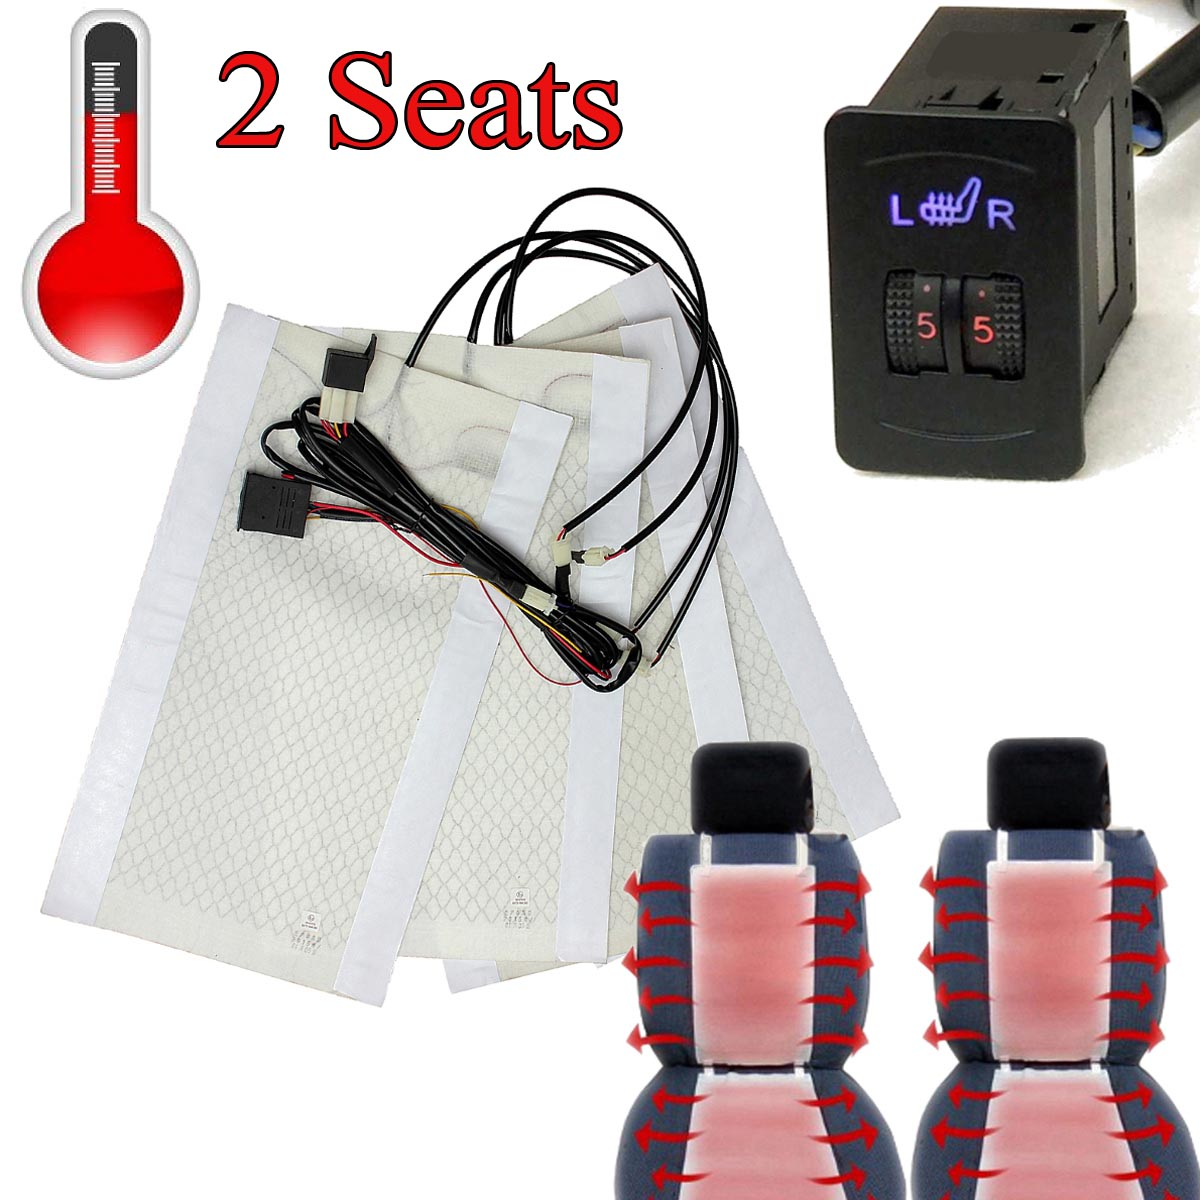 2 Seats 4 Pads Universal Carbo n Fiber Heated Seat Heater 12 V Pads 2 Dial 5 Level Switch  Winter Warmer Seat Covers фильтр korting kit kap 800 carbo